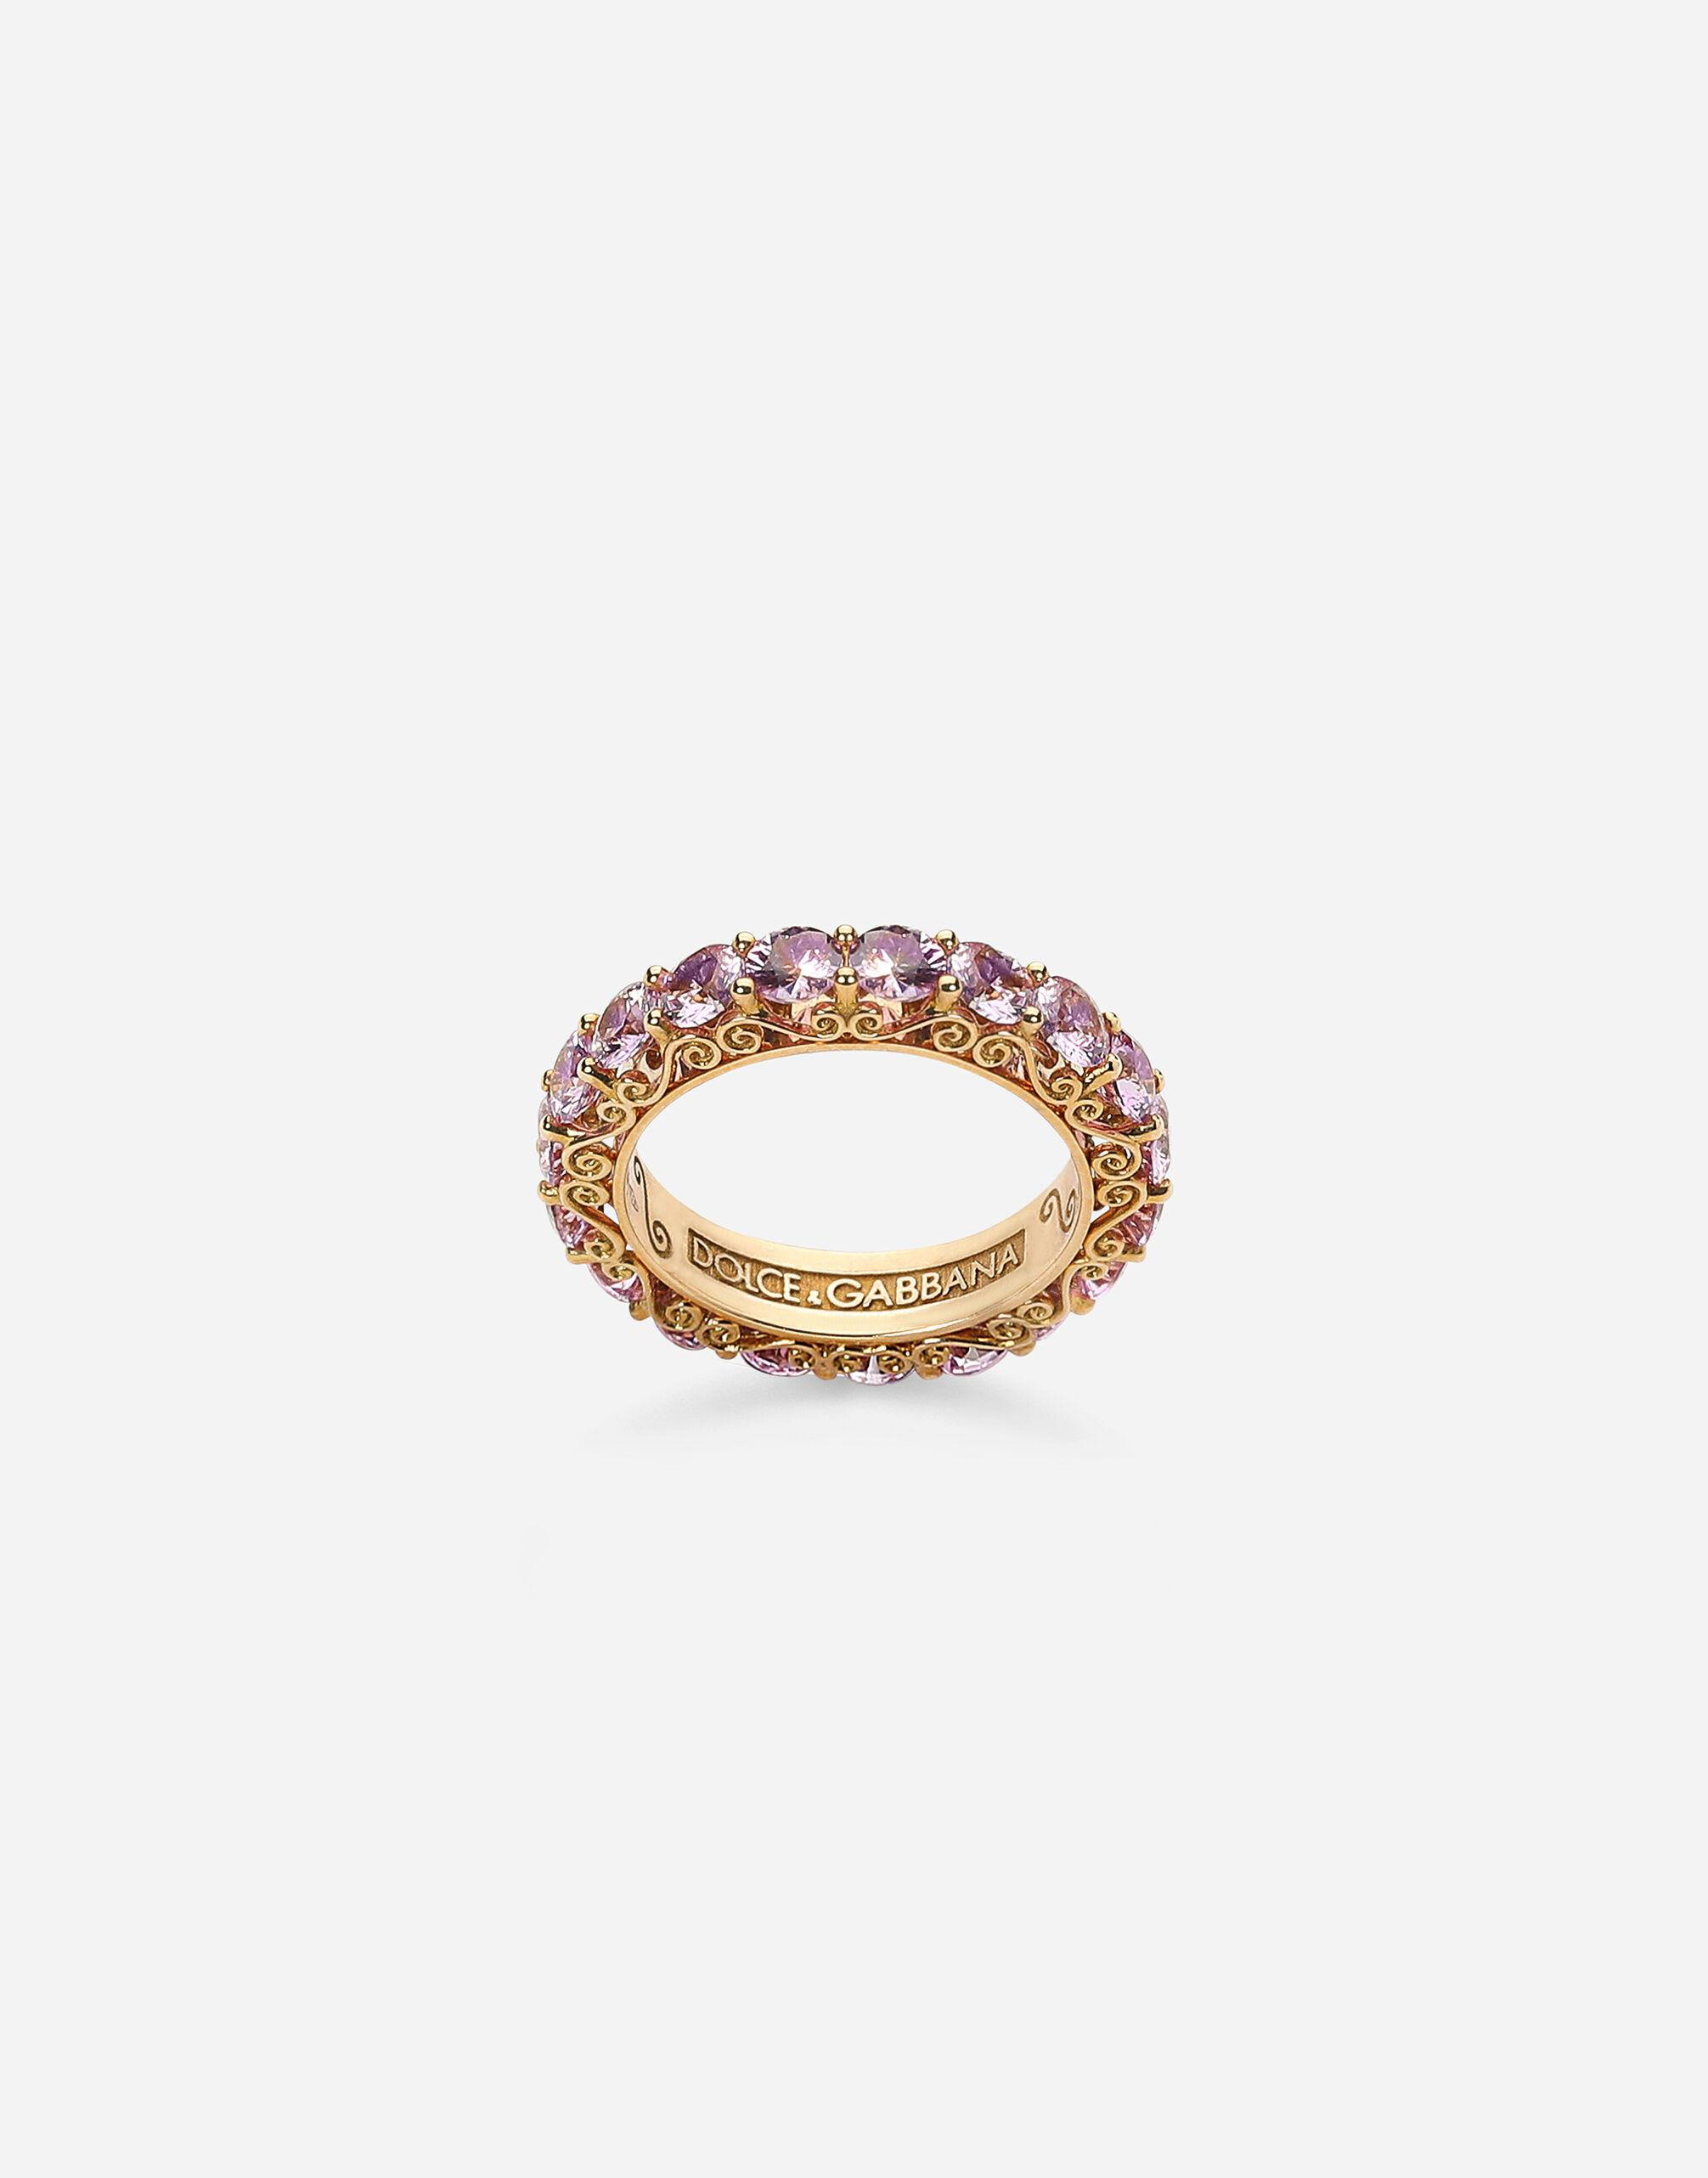 Heritage band ring in yellow 18kt gold with pink sapphires